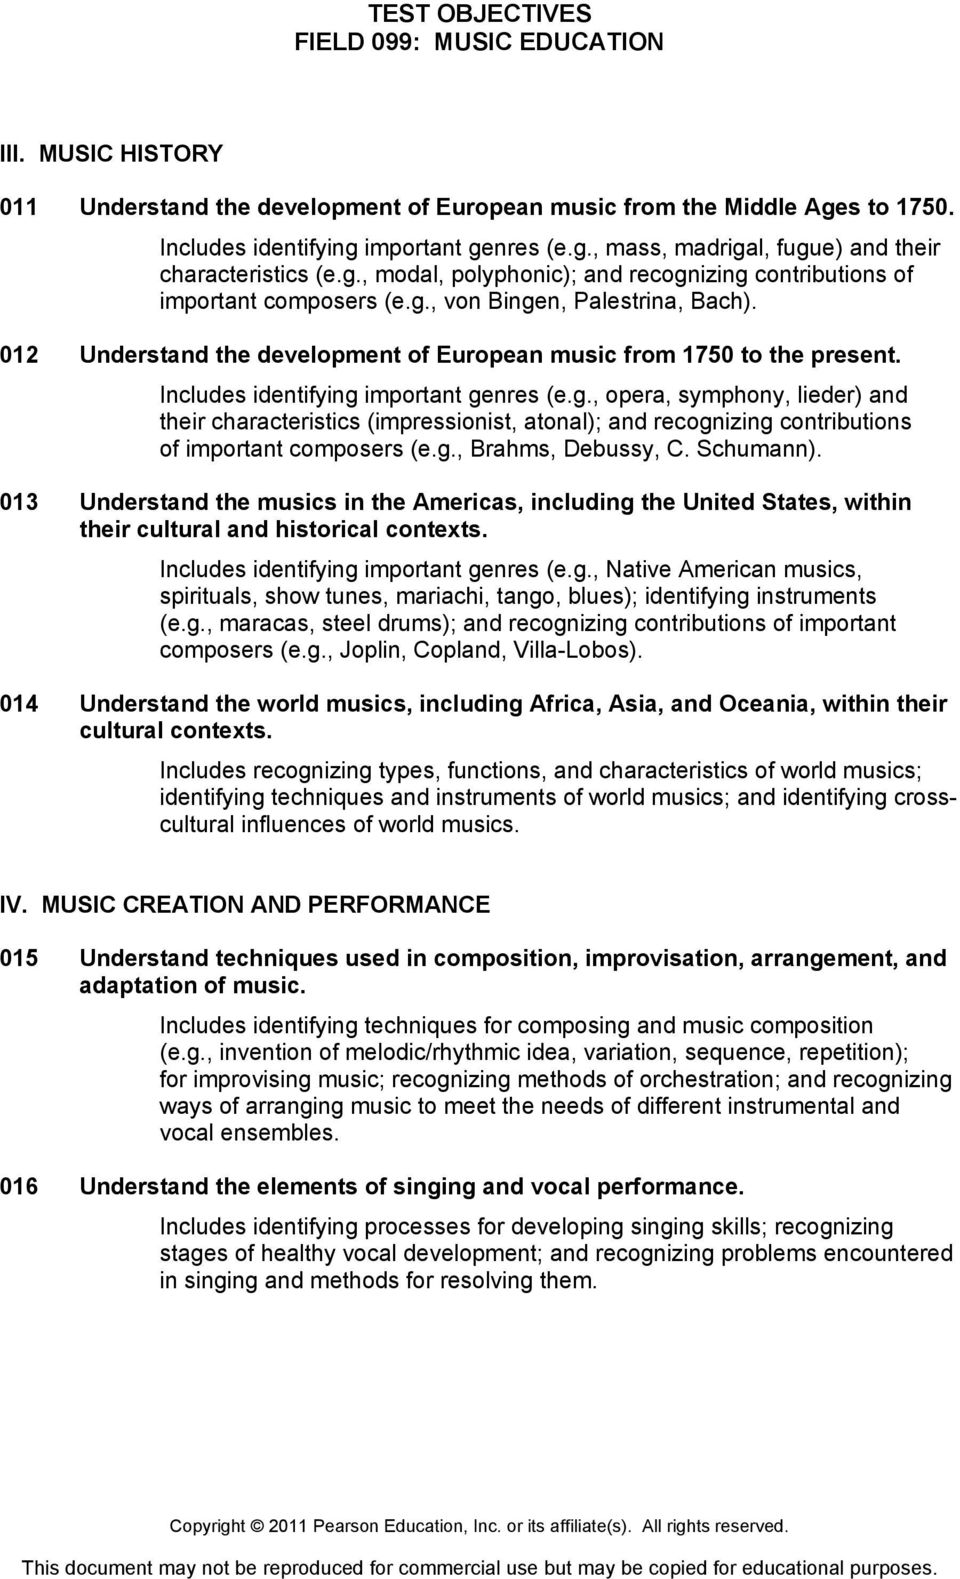 g., Brahms, Debussy, C. Schumann). 013 Understand the musics in the Americas, including the United States, within their cultural and historical contexts. Includes identifying important genres (e.g., Native American musics, spirituals, show tunes, mariachi, tango, blues); identifying instruments (e.